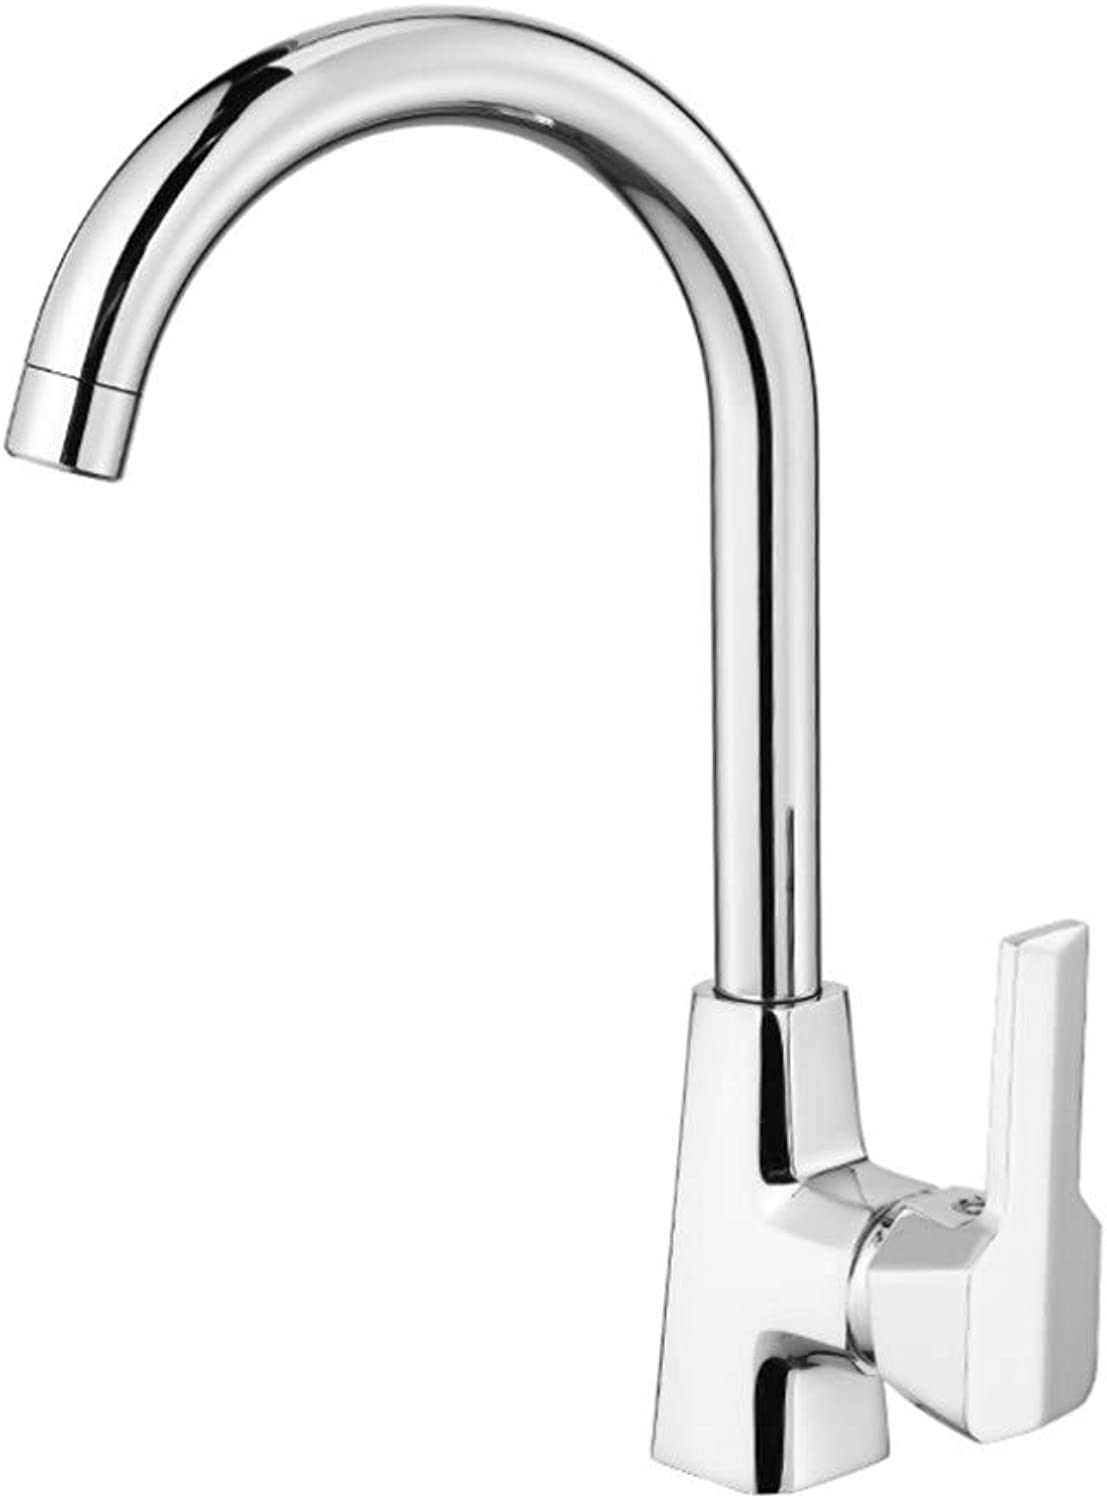 Ss Kitchen Faucet Single Handle Sink Faucet Hot And Cold Water Mixer Brushed Nickel Copper Kitchen Sink Faucet